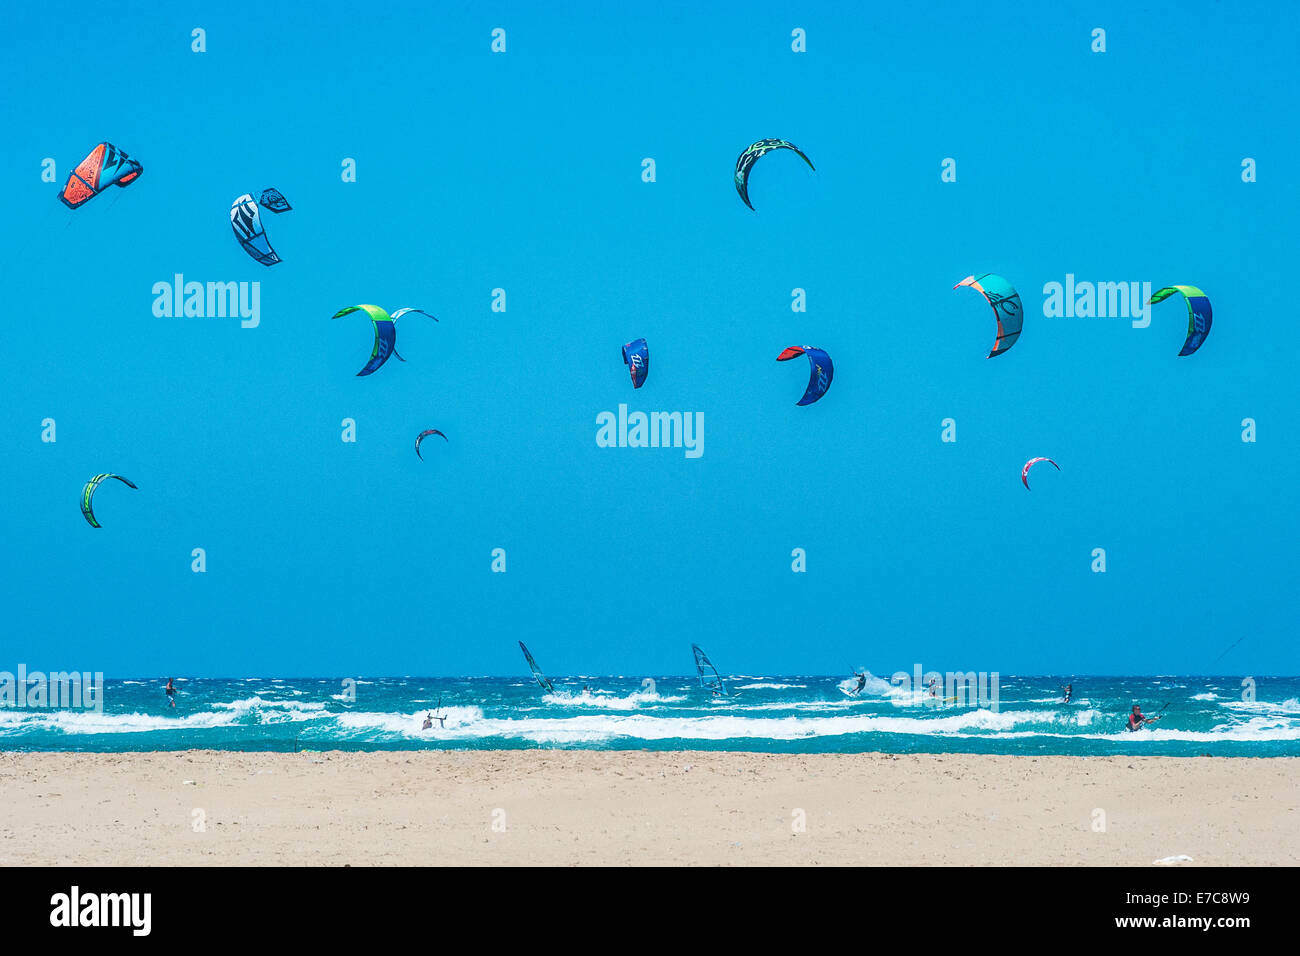 Kite surfing and wind surfing in Rhodes, Greece - Stock Image